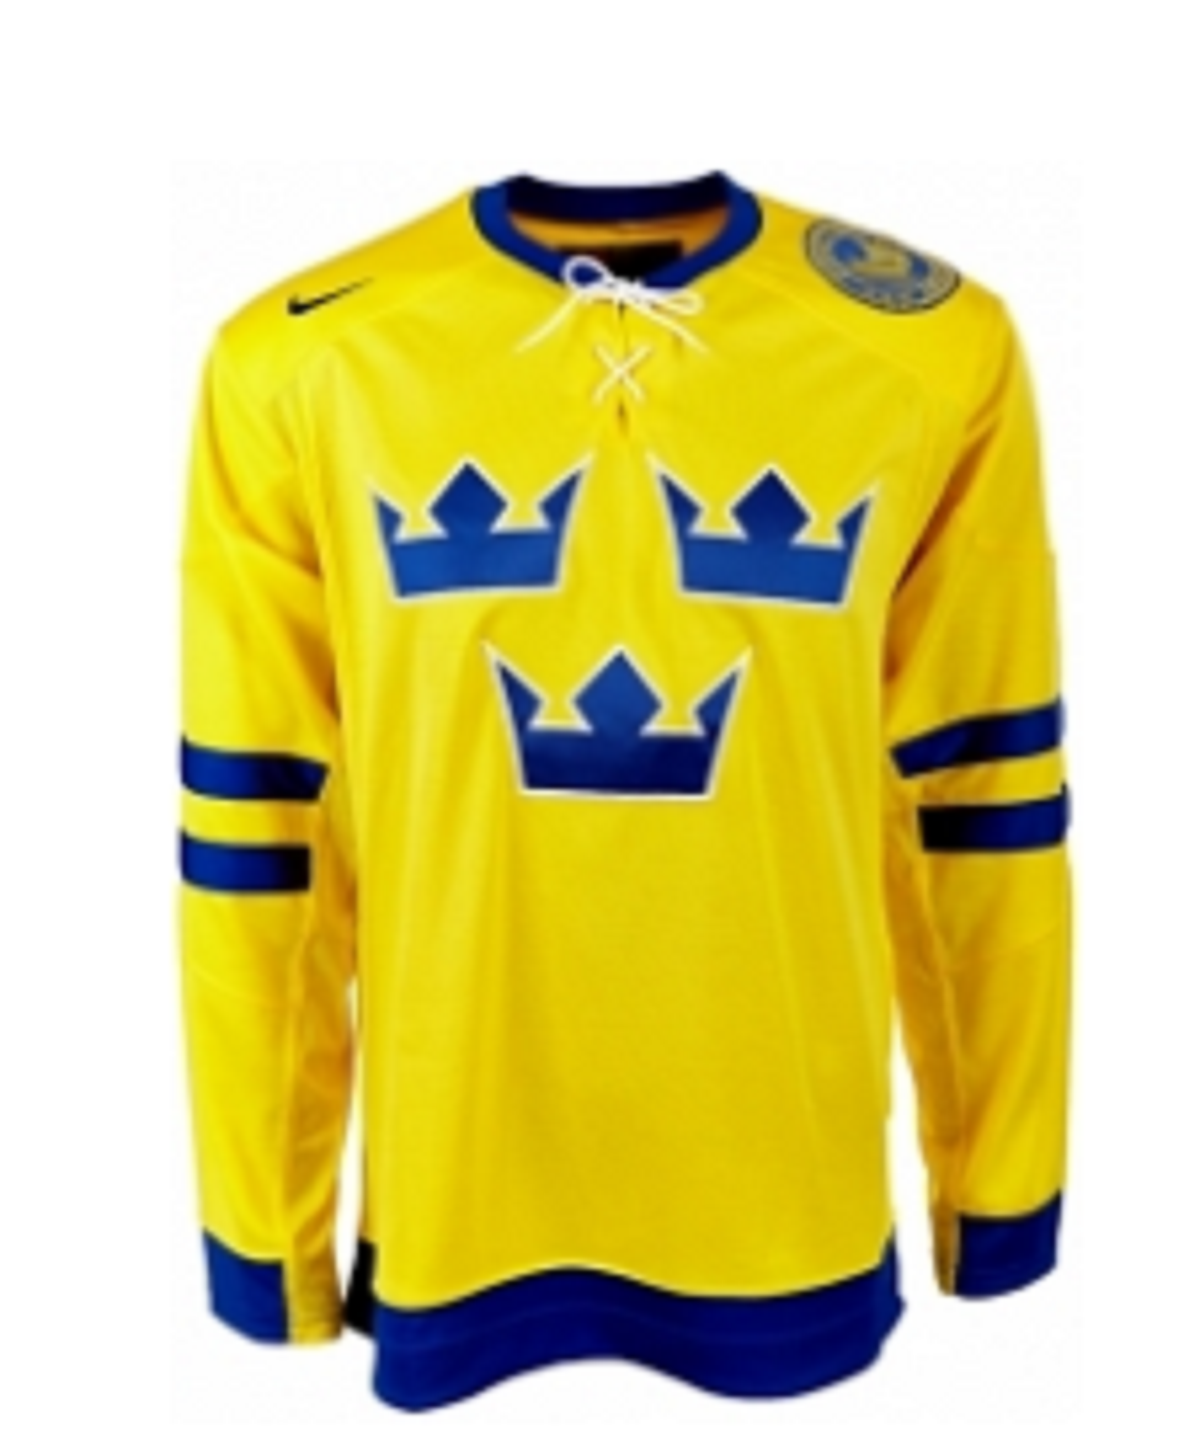 Ice Hockey Uniforms Yellow & Blue Model No TSI­5606